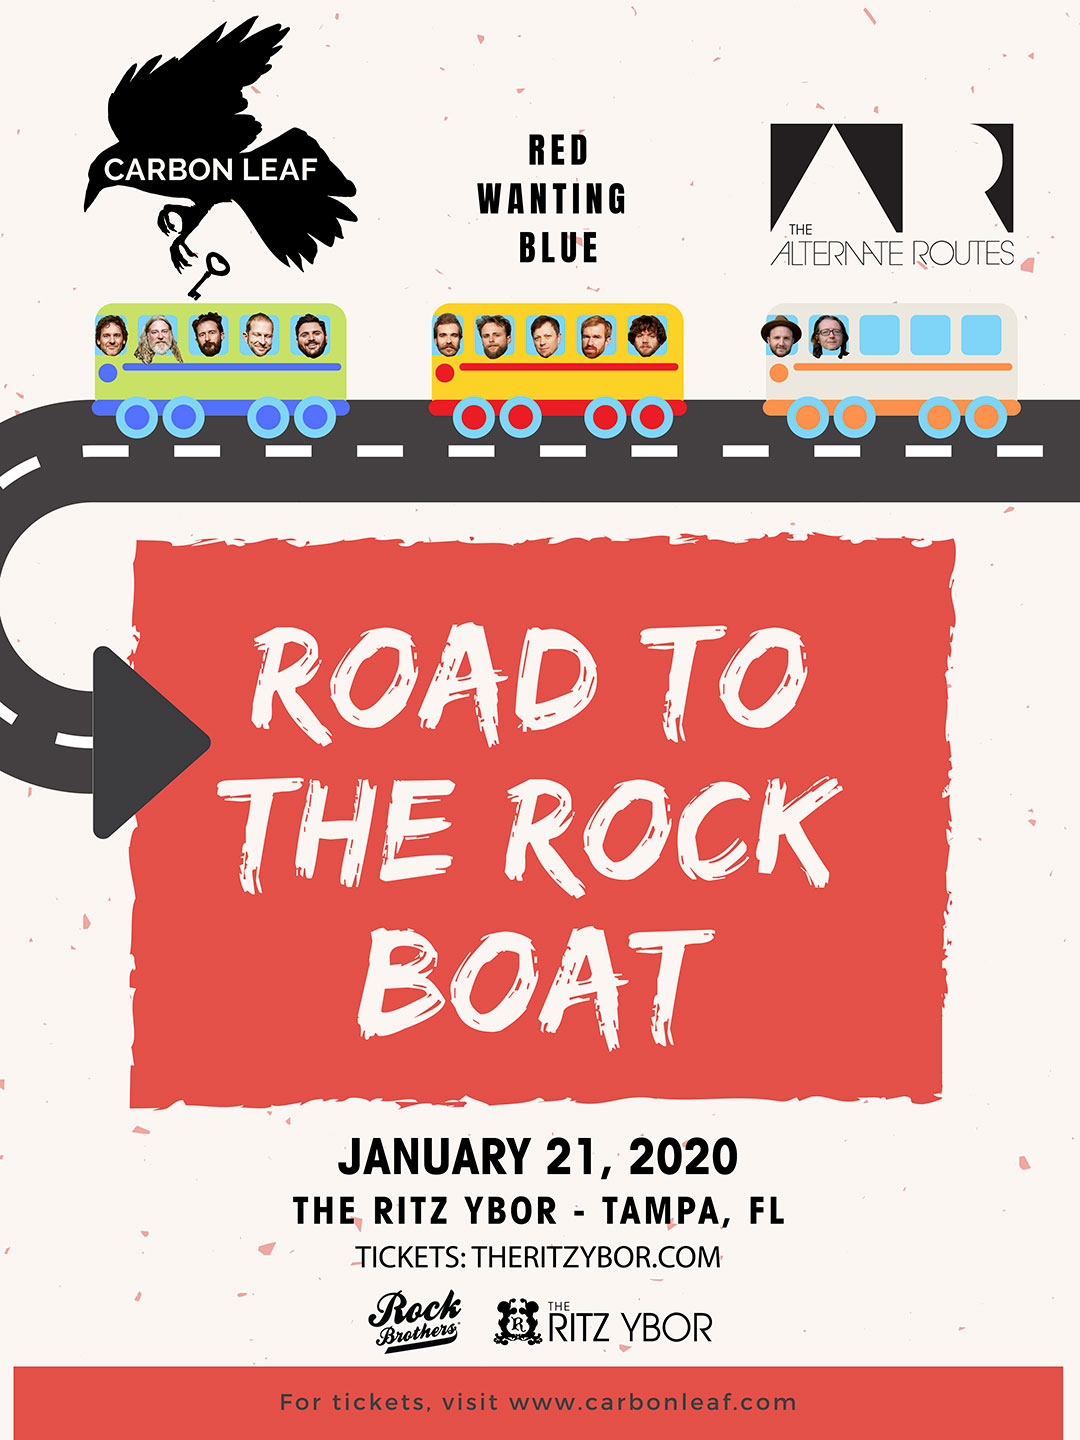 Red Wanting Blue, Carbon Leaf & The Alternate Routes – Road to Rock The Boat at The RITZ Ybor – 1/21/2020